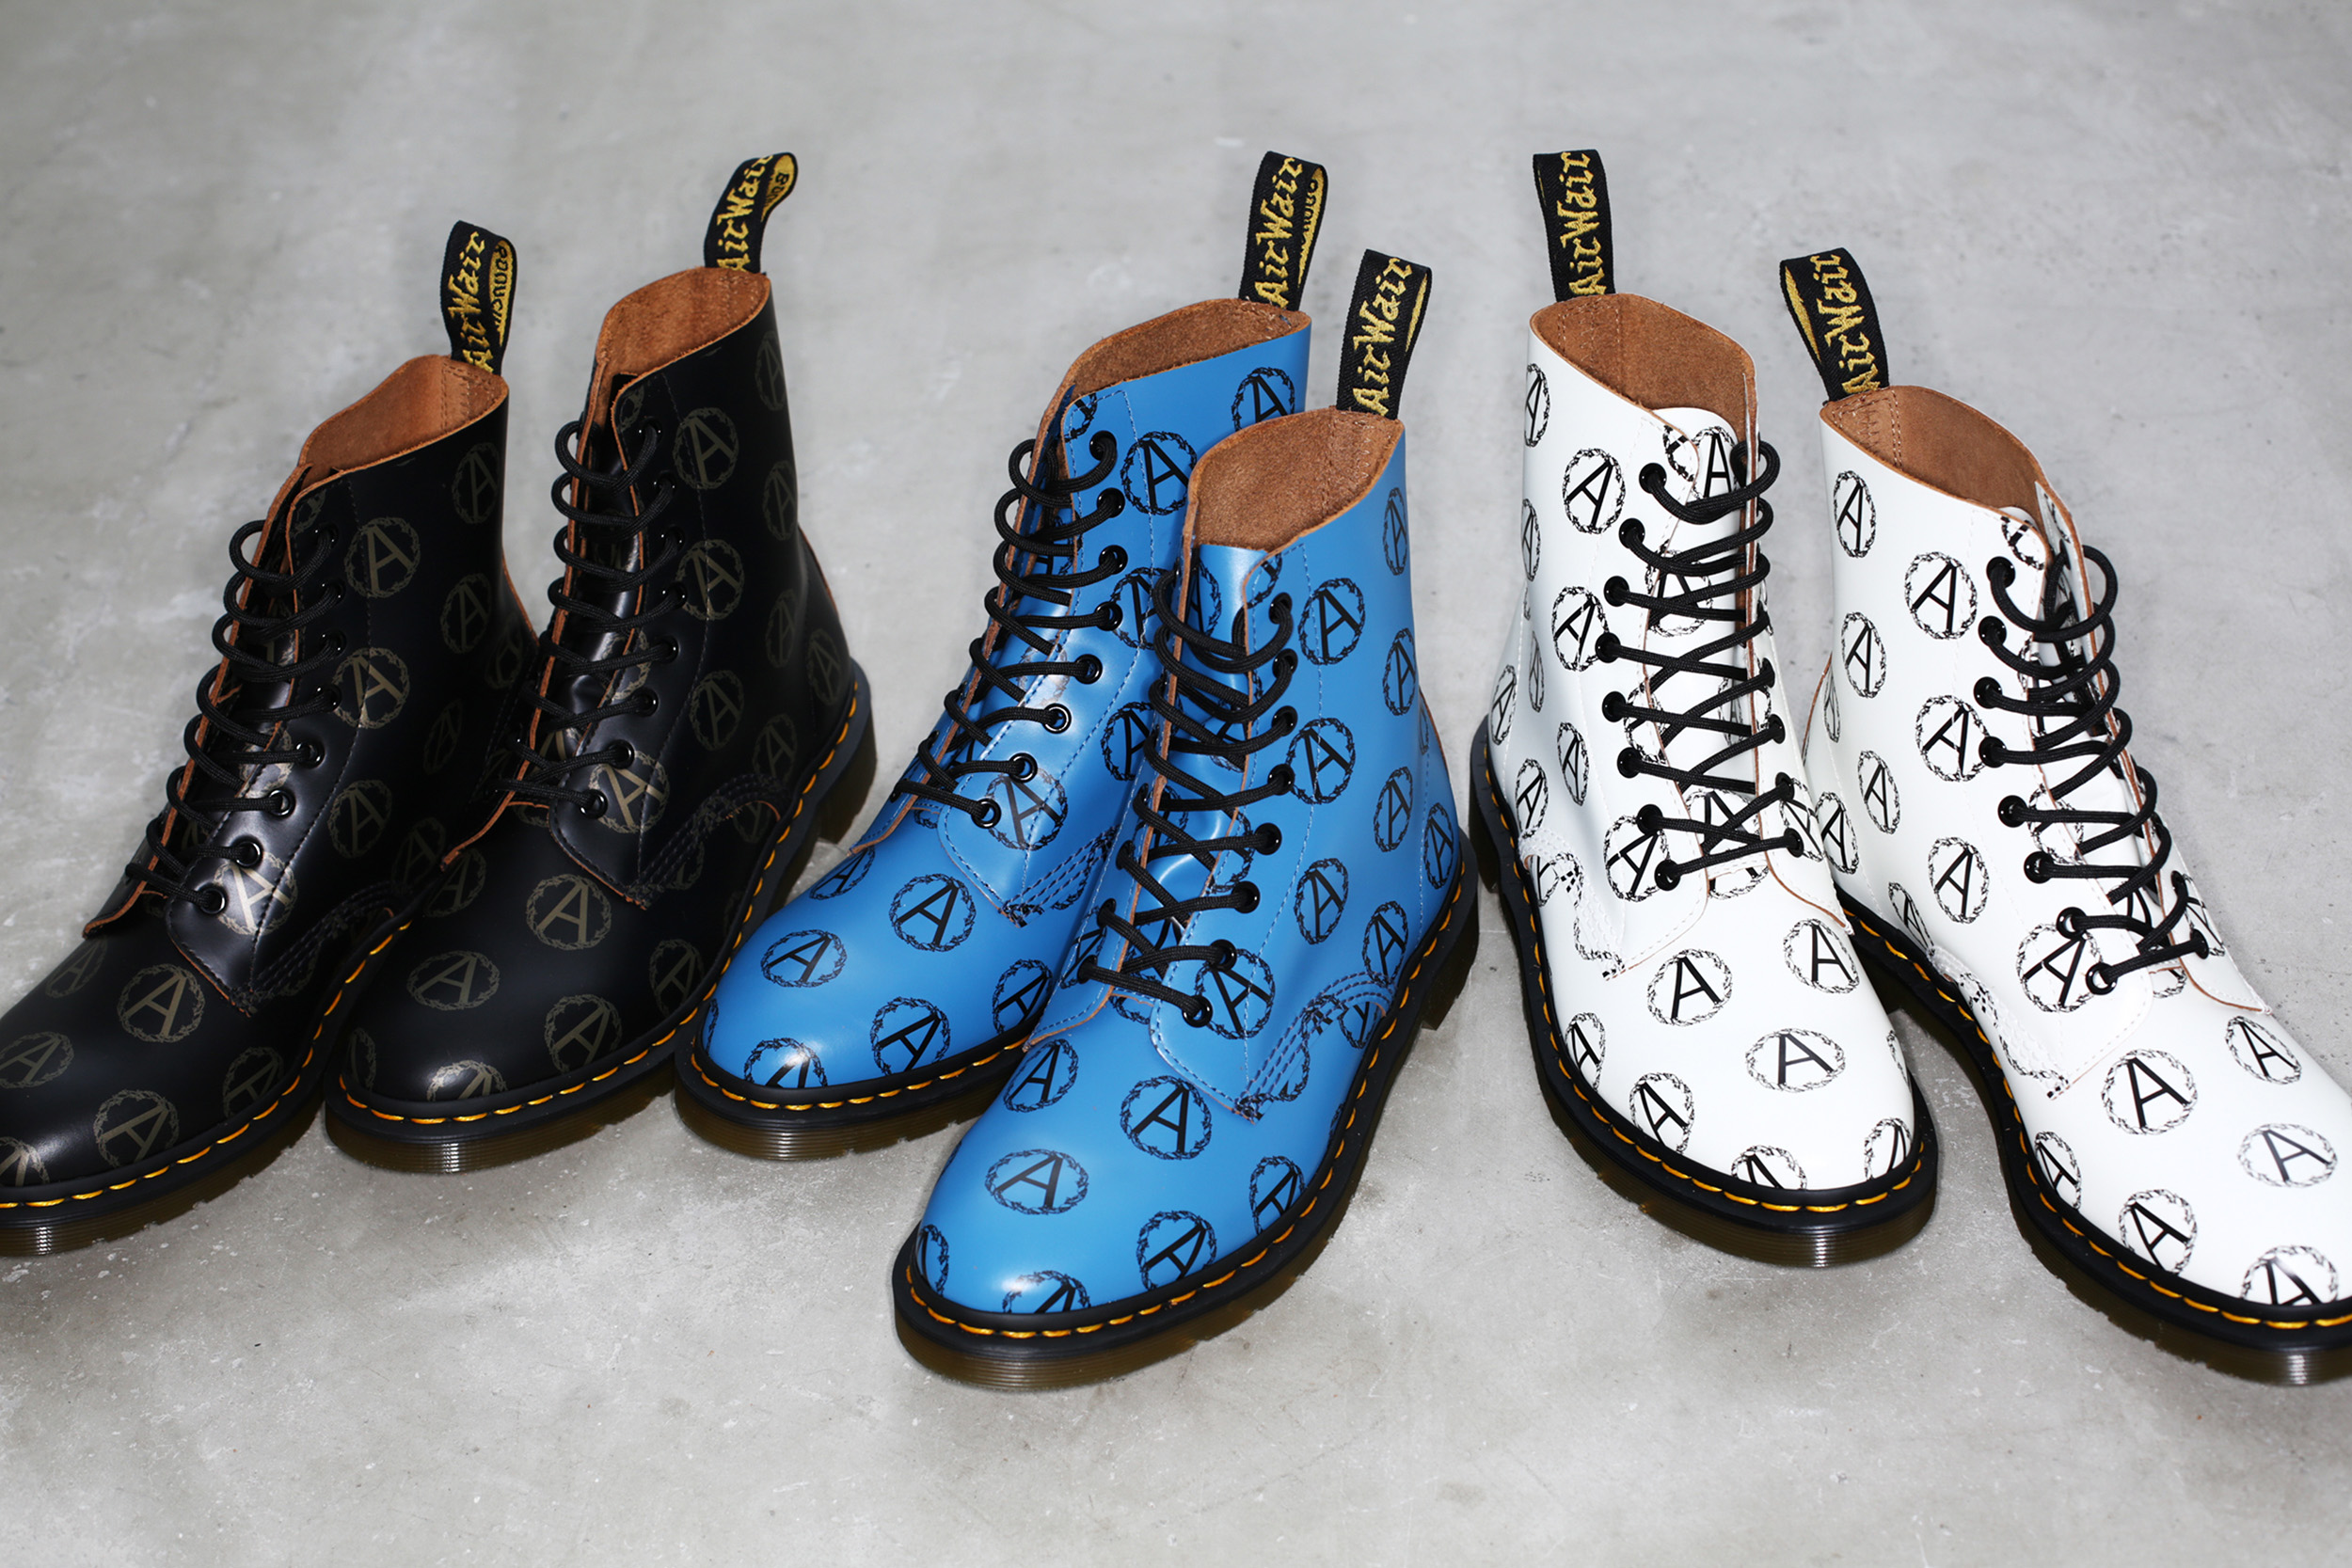 Boots from the Supreme, Undercover collaboration with Dr. Martens.